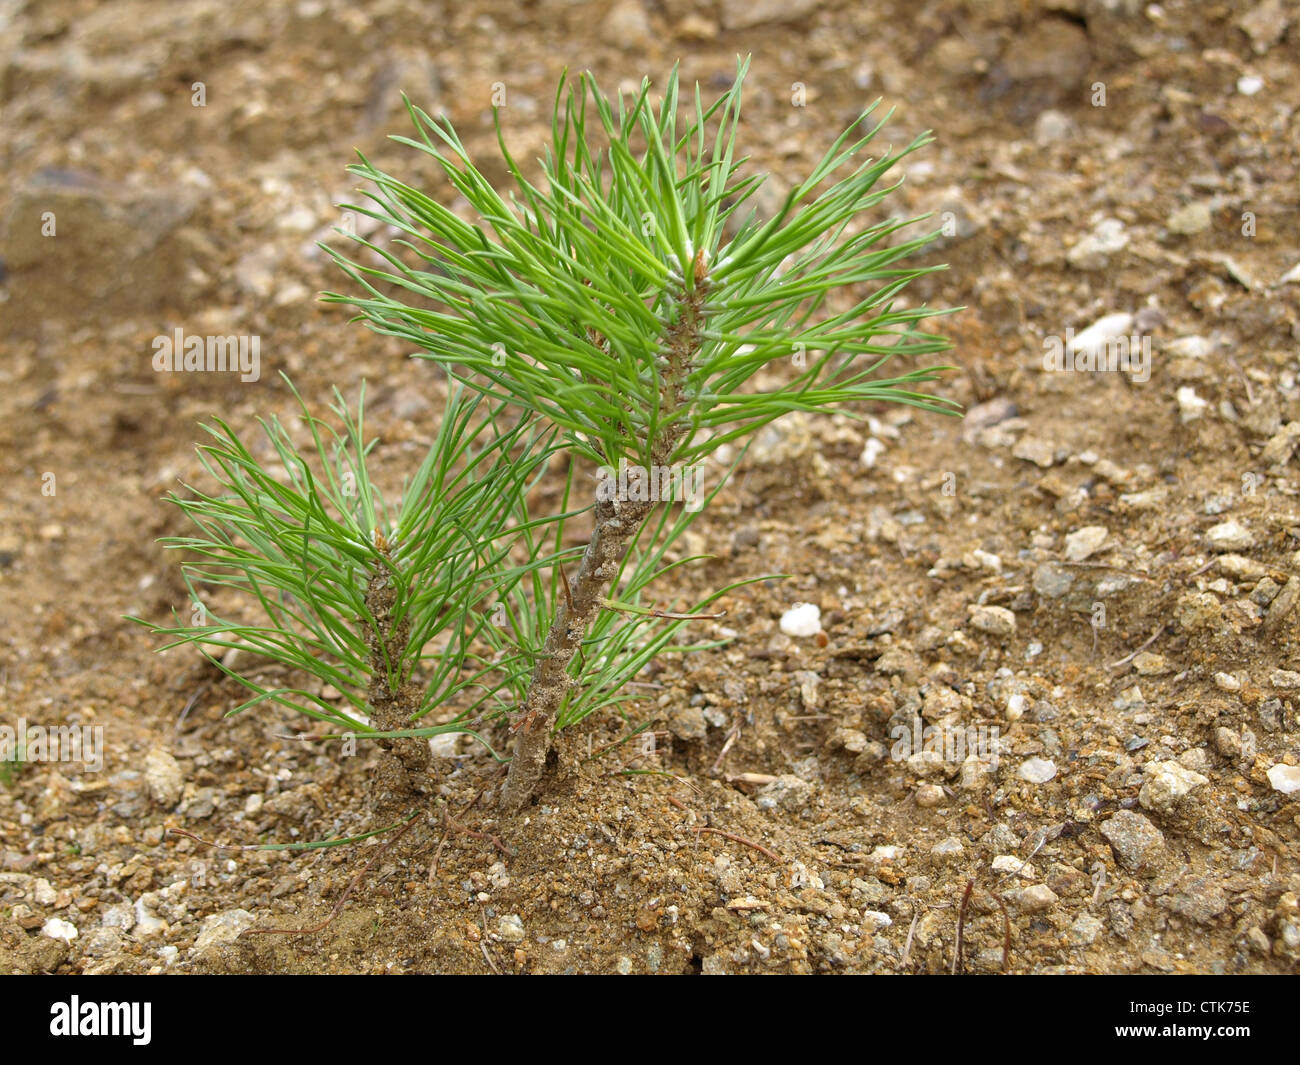 young pine pinus junge kiefer stock photo royalty free image 49595210 alamy. Black Bedroom Furniture Sets. Home Design Ideas